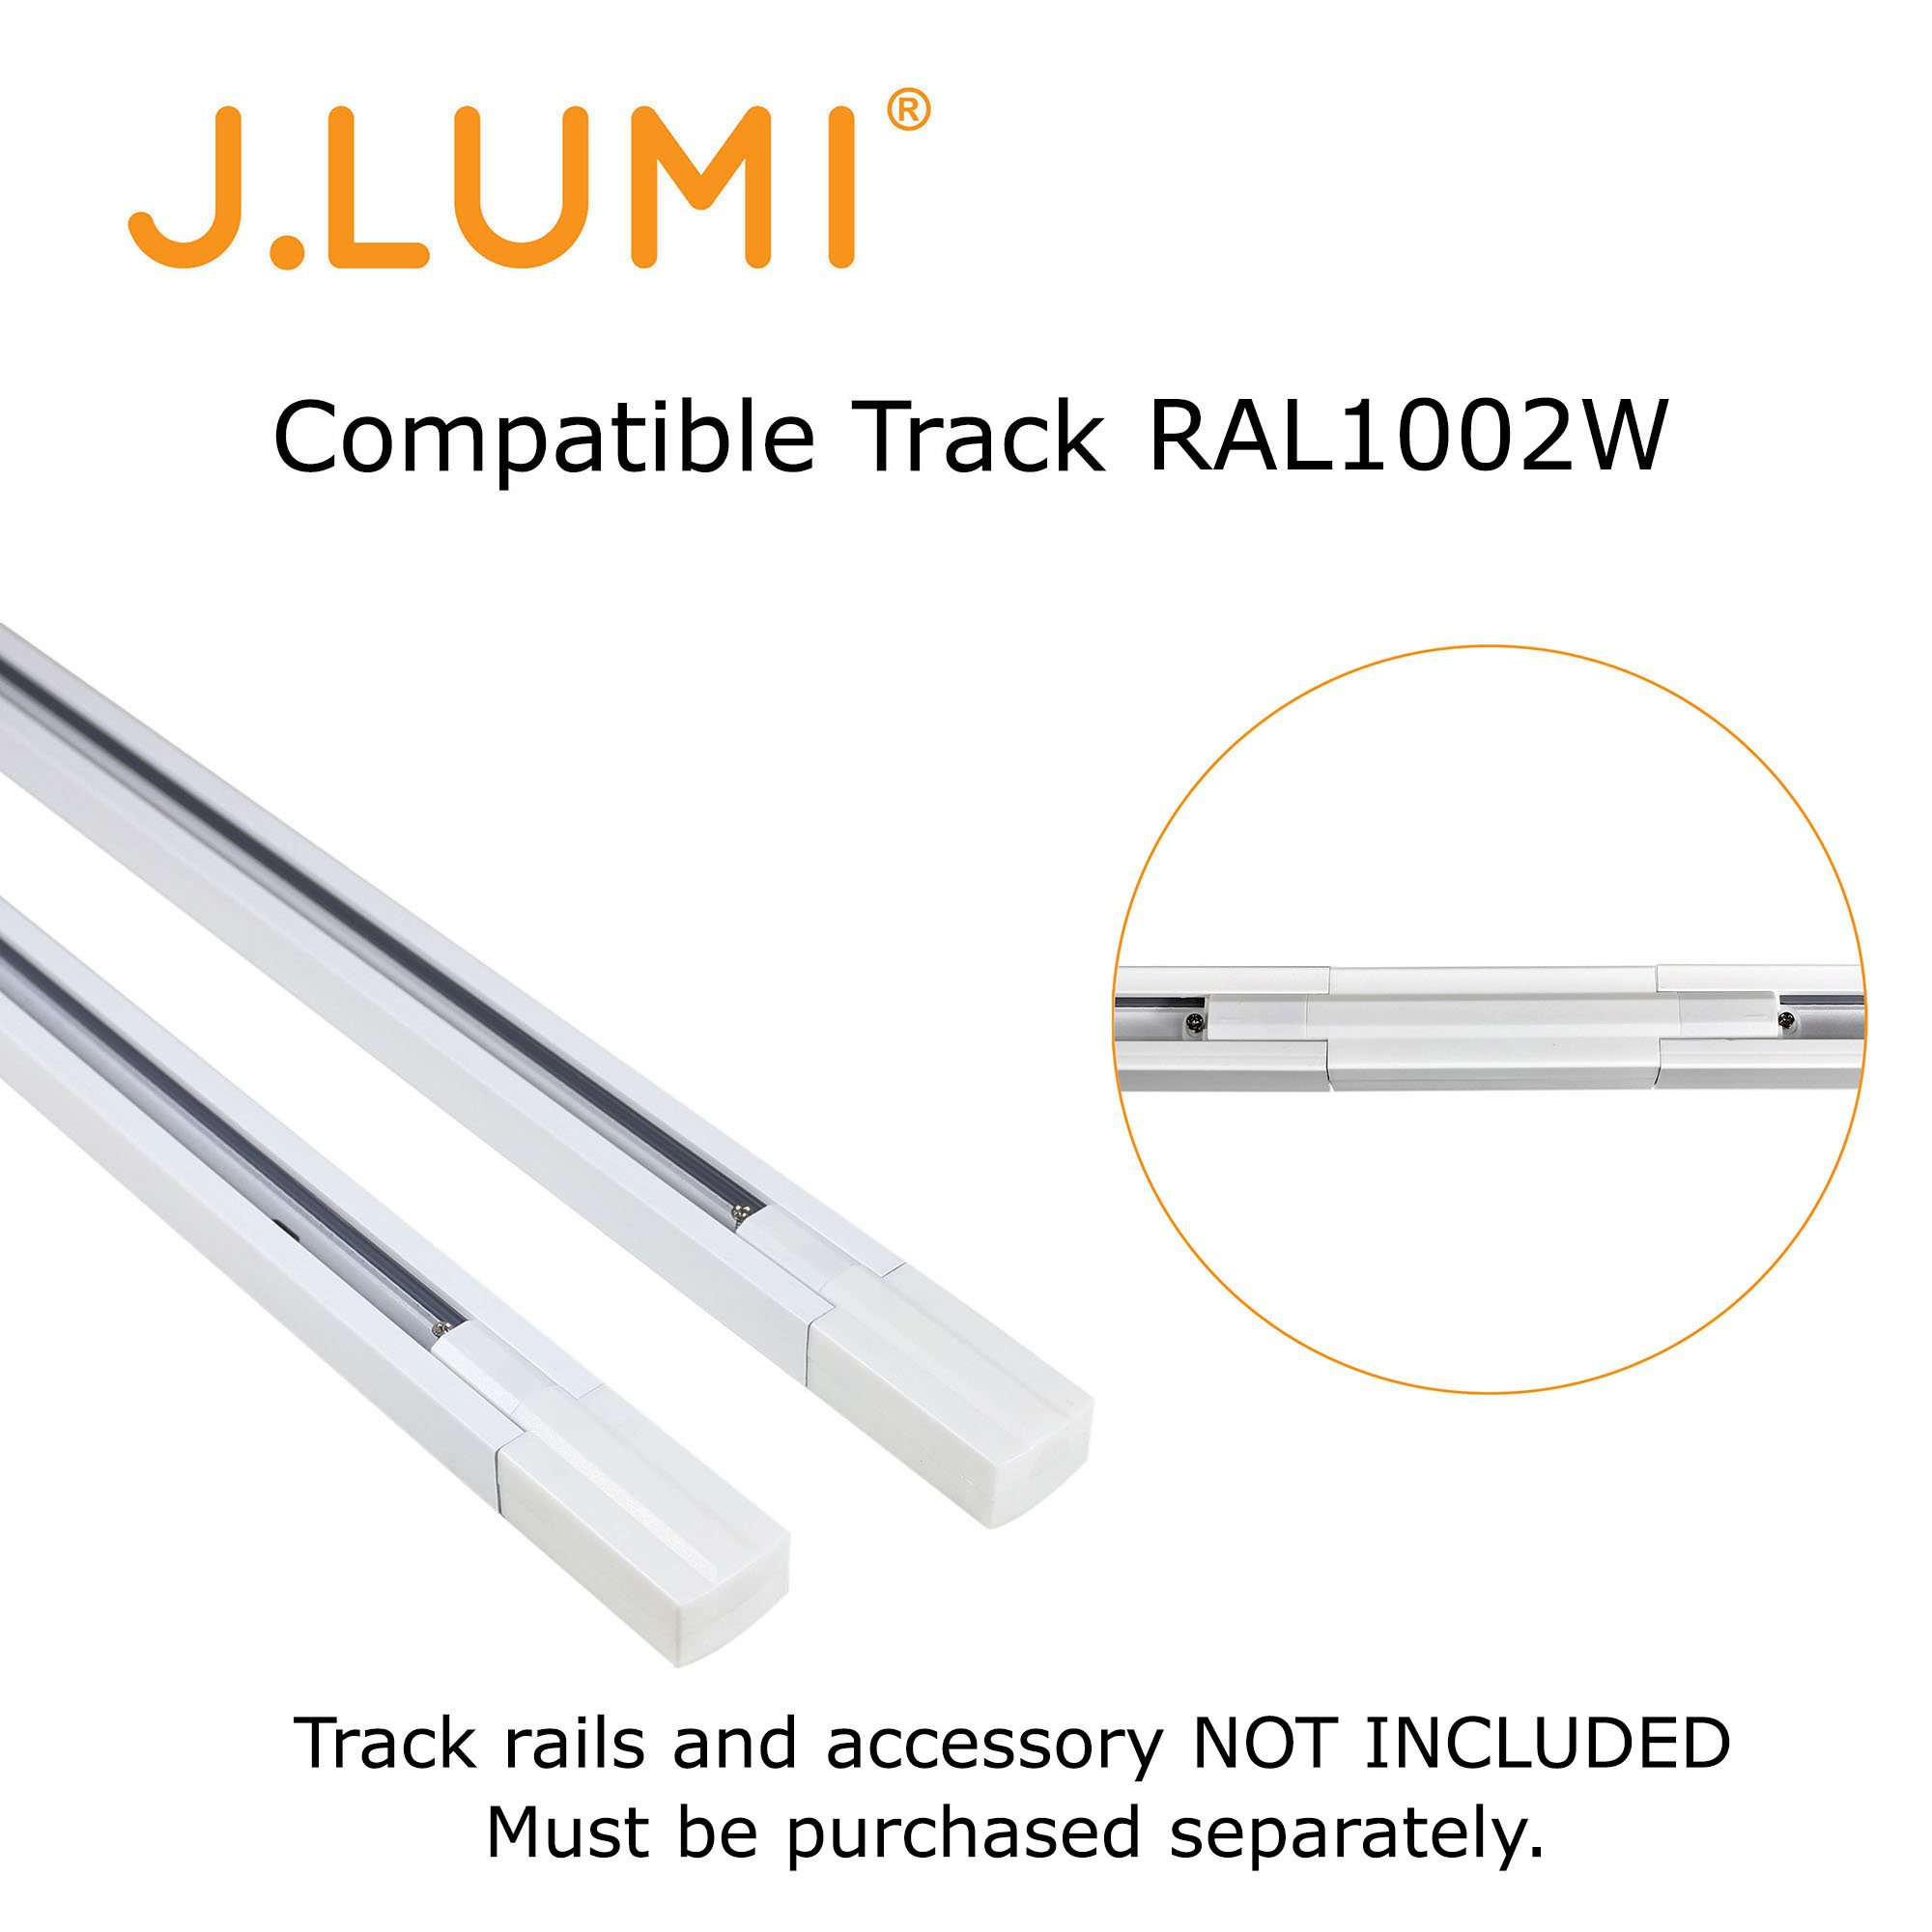 J.LUMI TRK9600W LED Track Light Fixture, Includes LED 5W Bulb | Vintage Mini Spotlight | Adjustable Tilt Angle, White Paint Finish | Compatible Rail RAL1002W (not Included) by J.LUMI (Image #5)